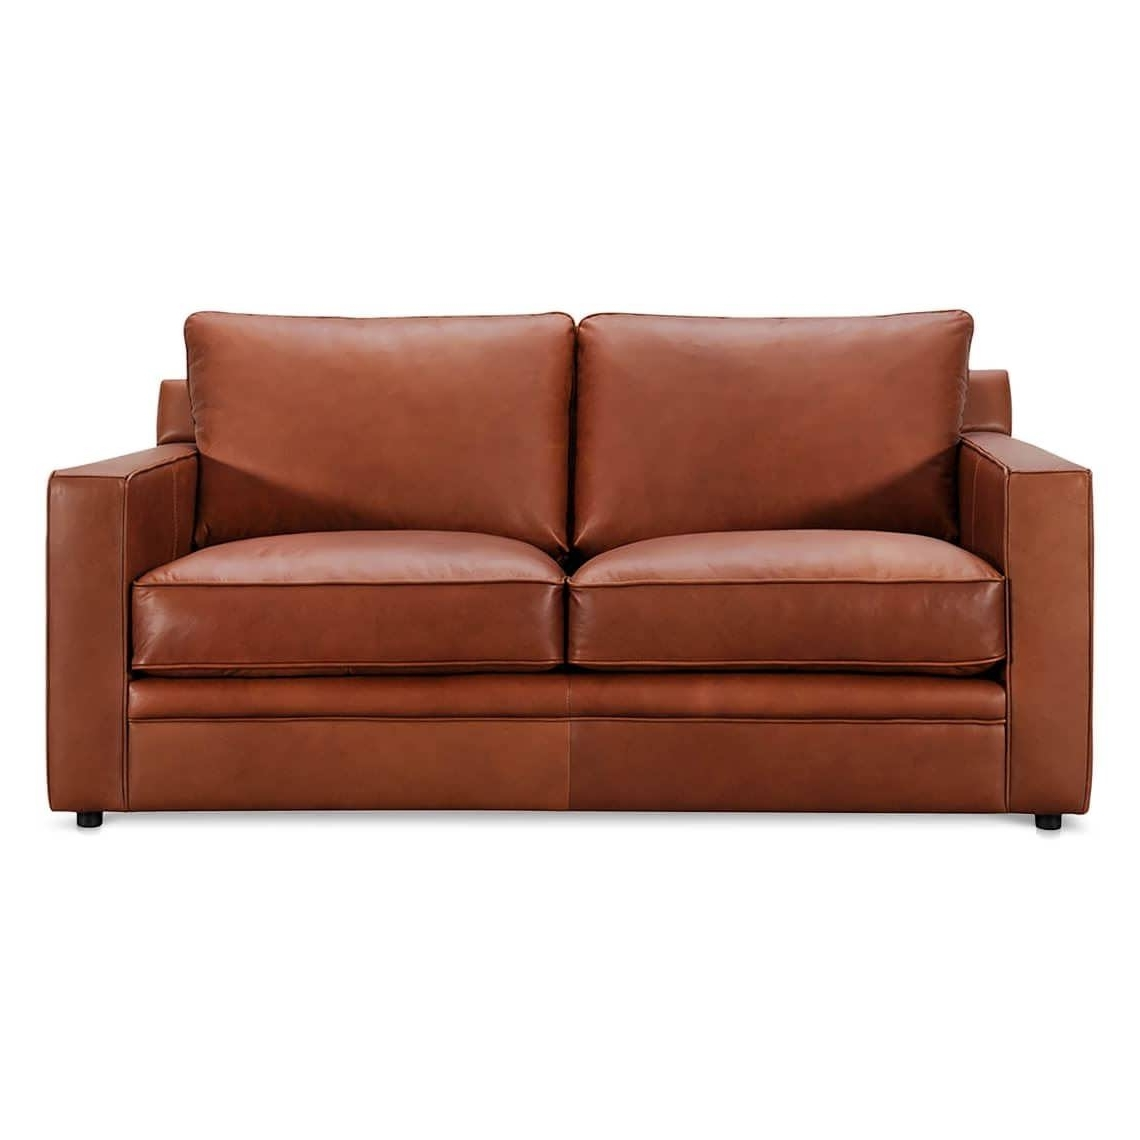 Leather Couches With Chaise Lounge With Regard To Recent Sofa : Black Leather Sectional Small Chaise Sofa Cheap Sectional (View 11 of 15)